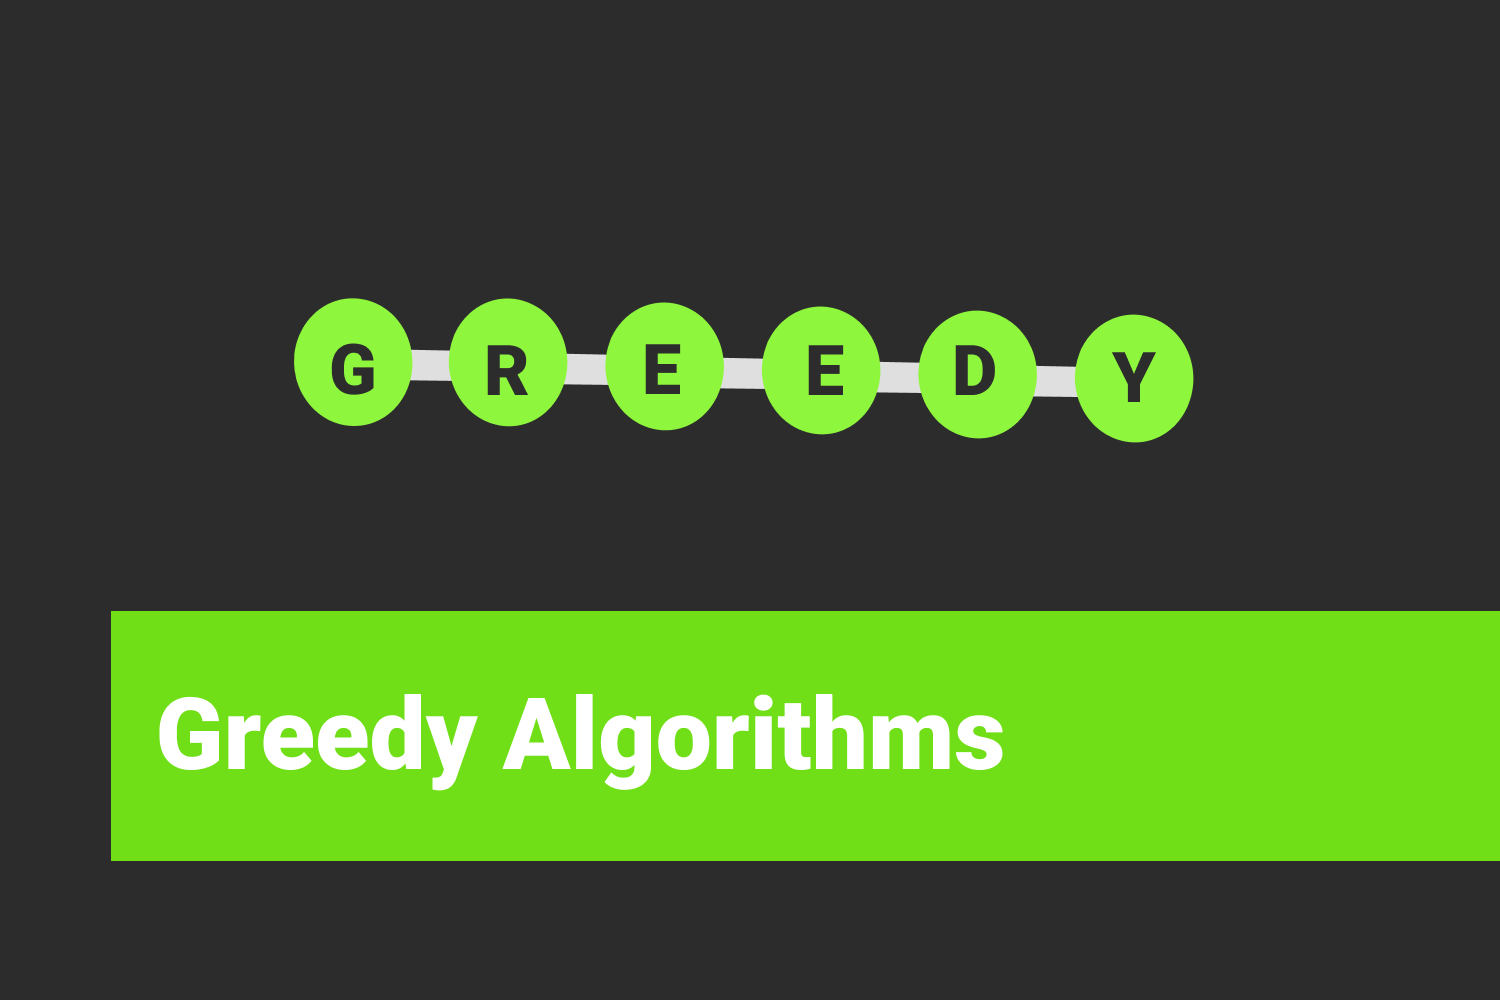 What are Greedy Algorithms?